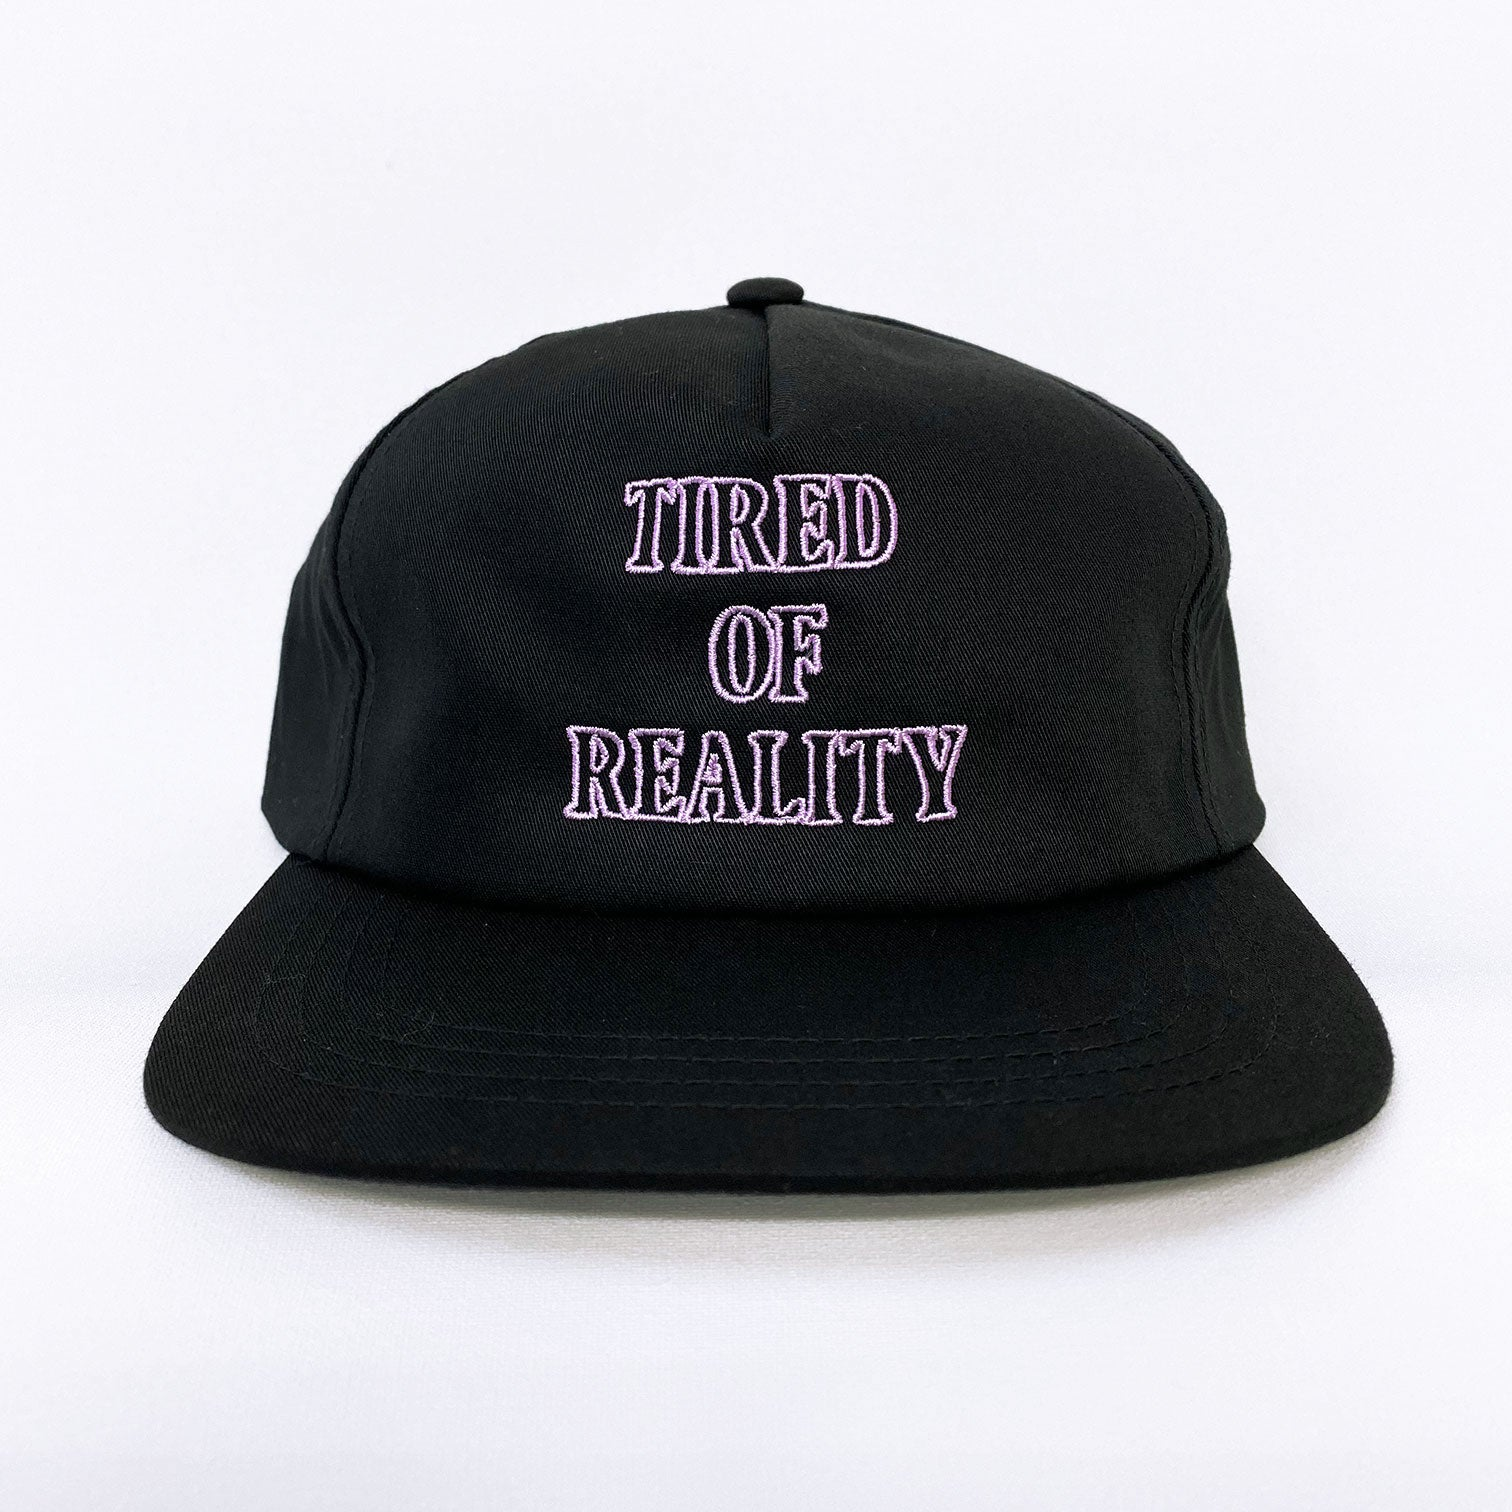 Tired of Reality Five Panel Hat